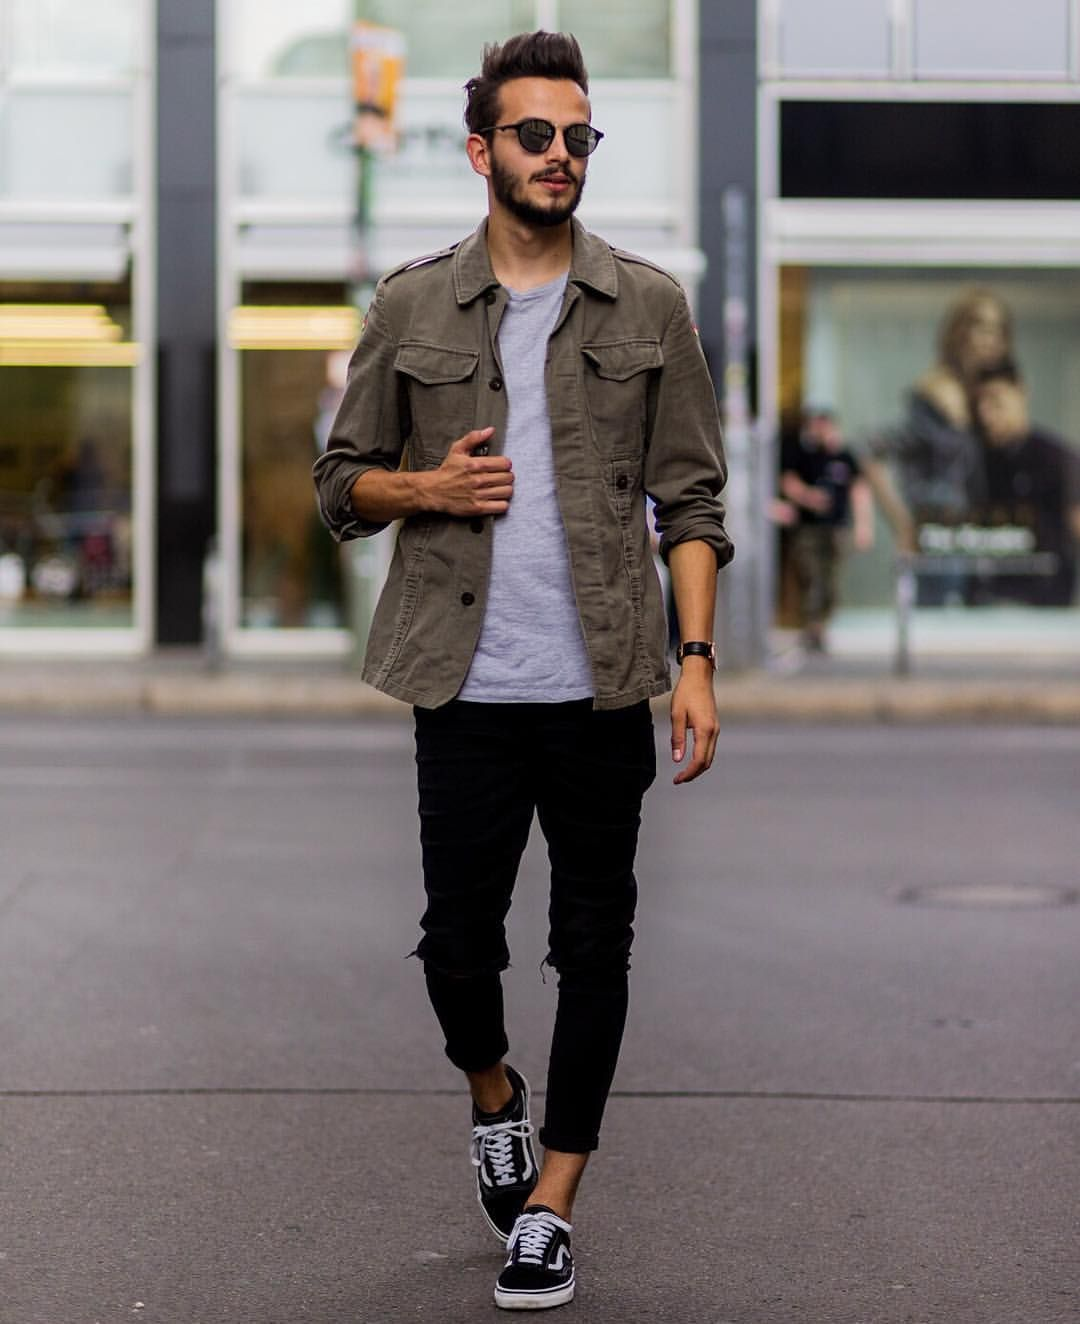 See this instagram photo by blvckxkev 663 likes men outfits pinterest instagram man Indie fashion style definition